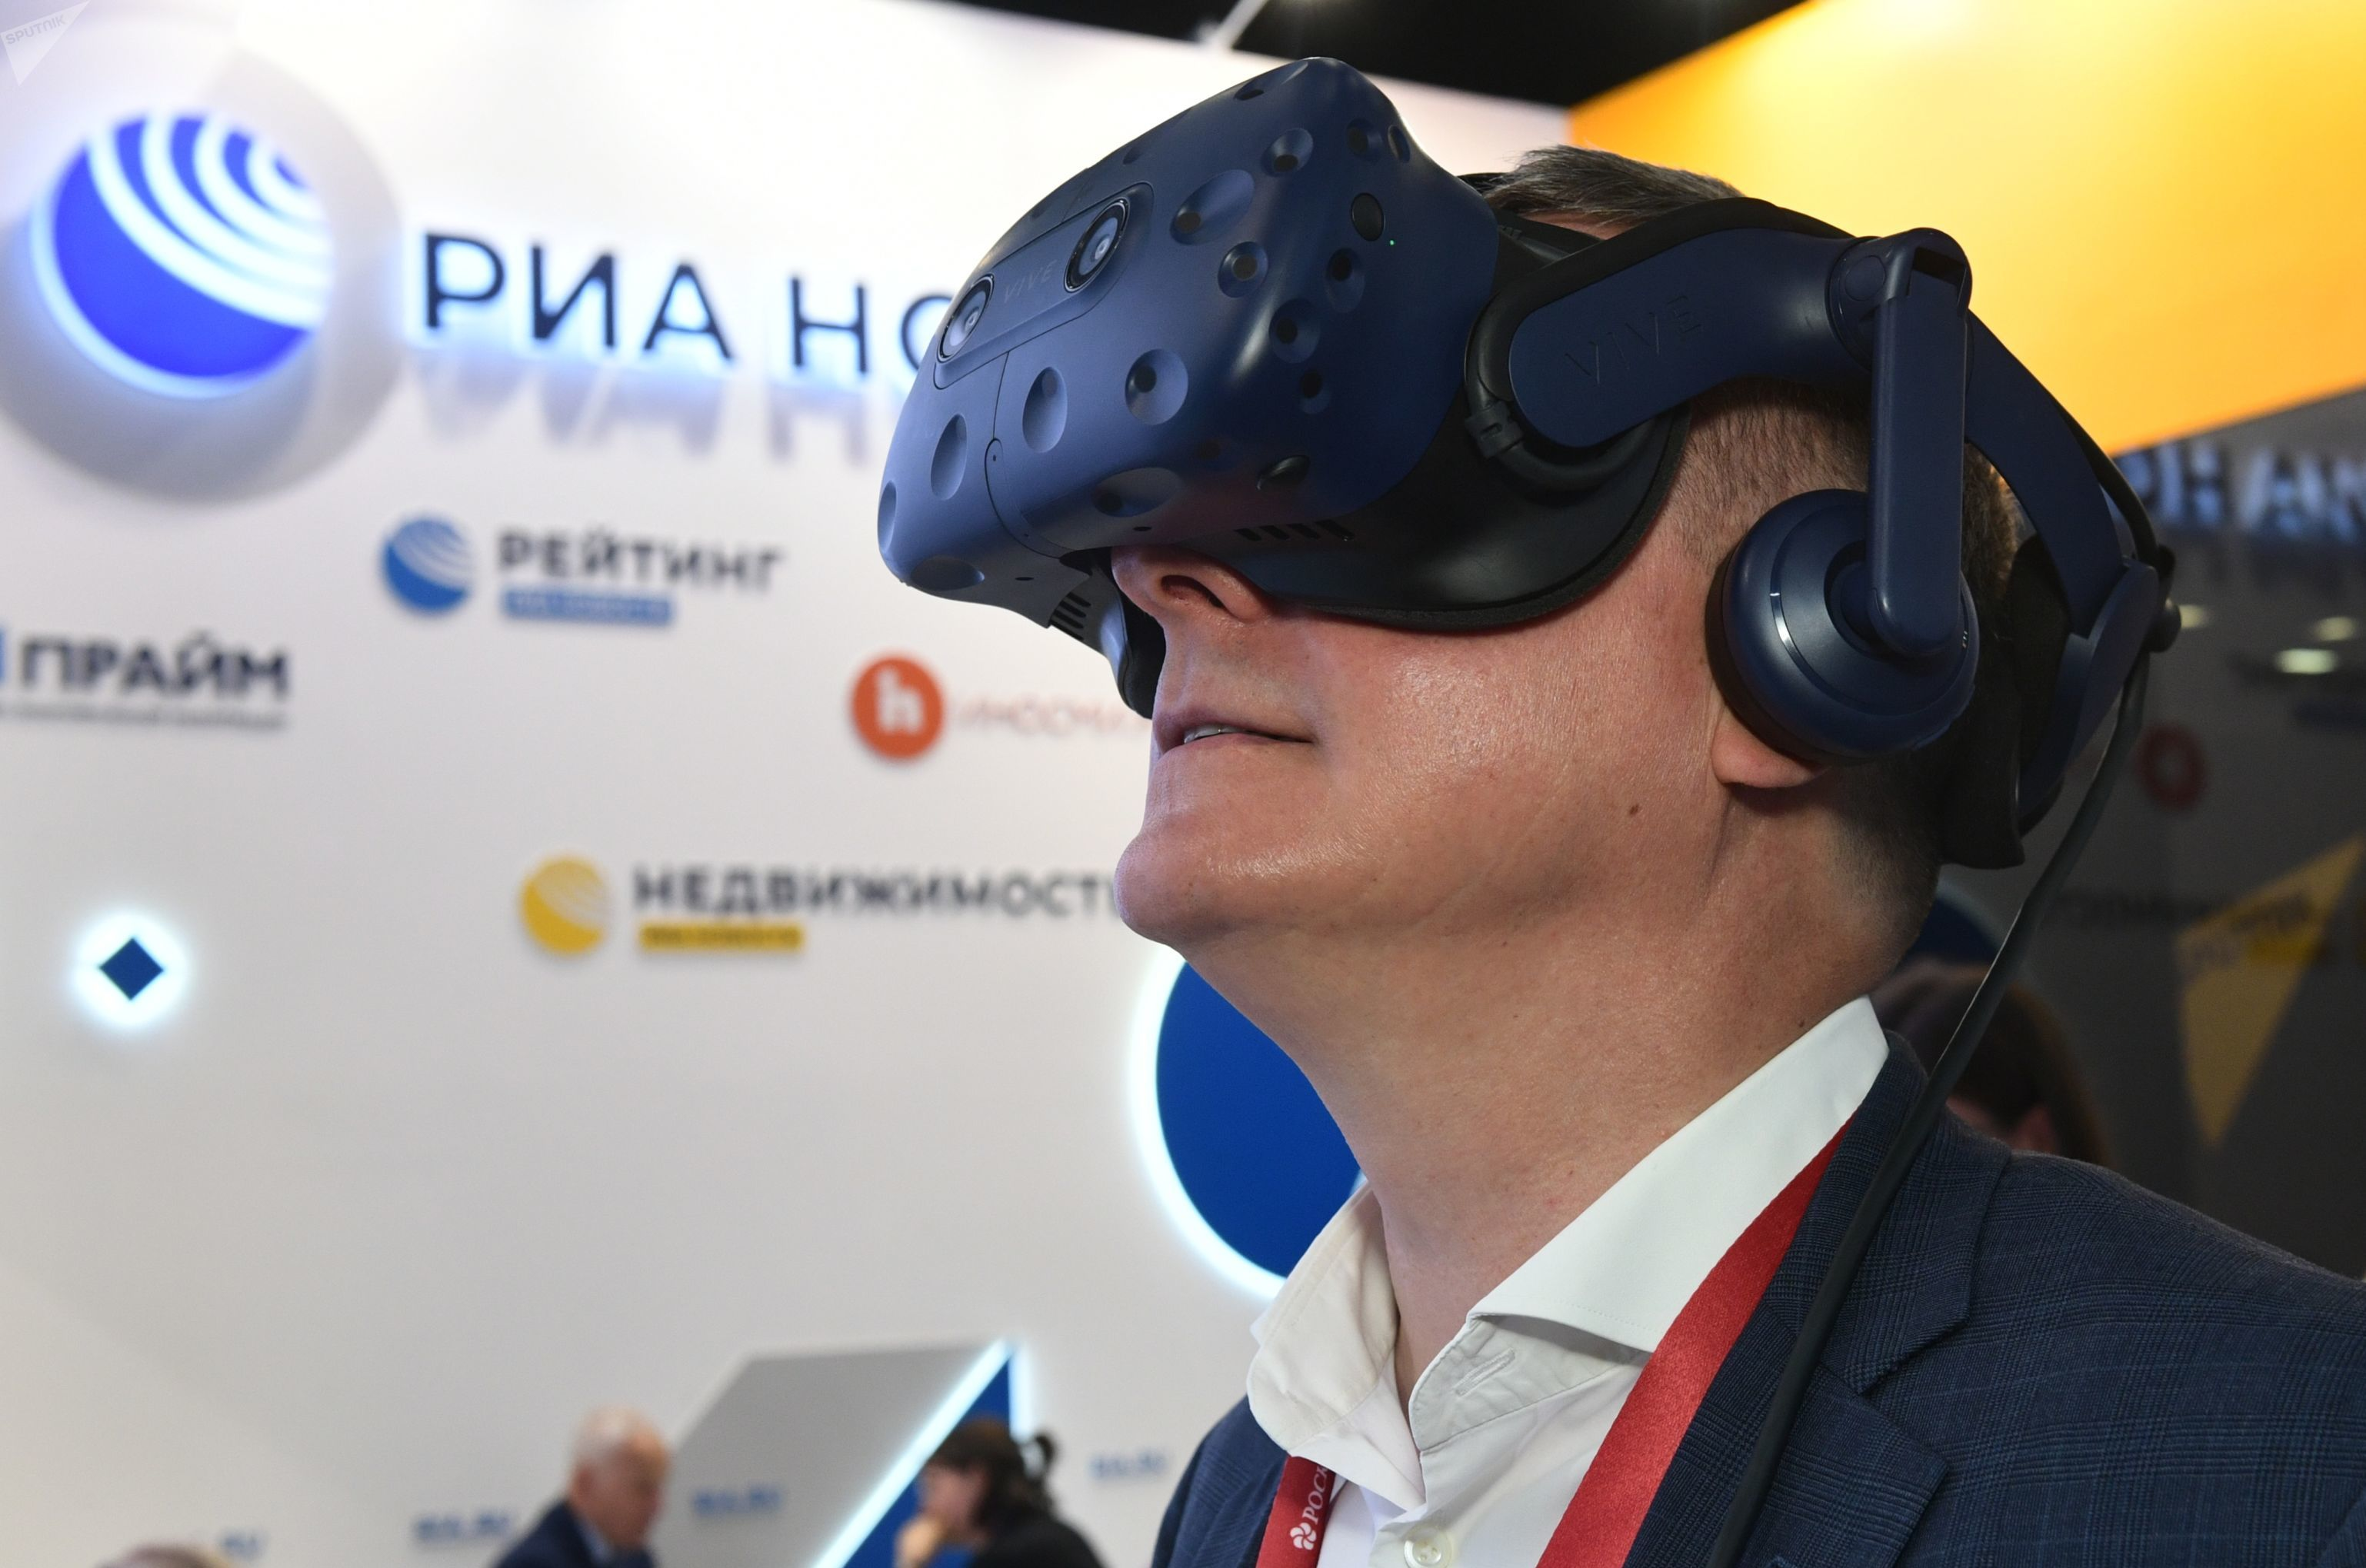 SPIEF 2019 visitor in the VR headset